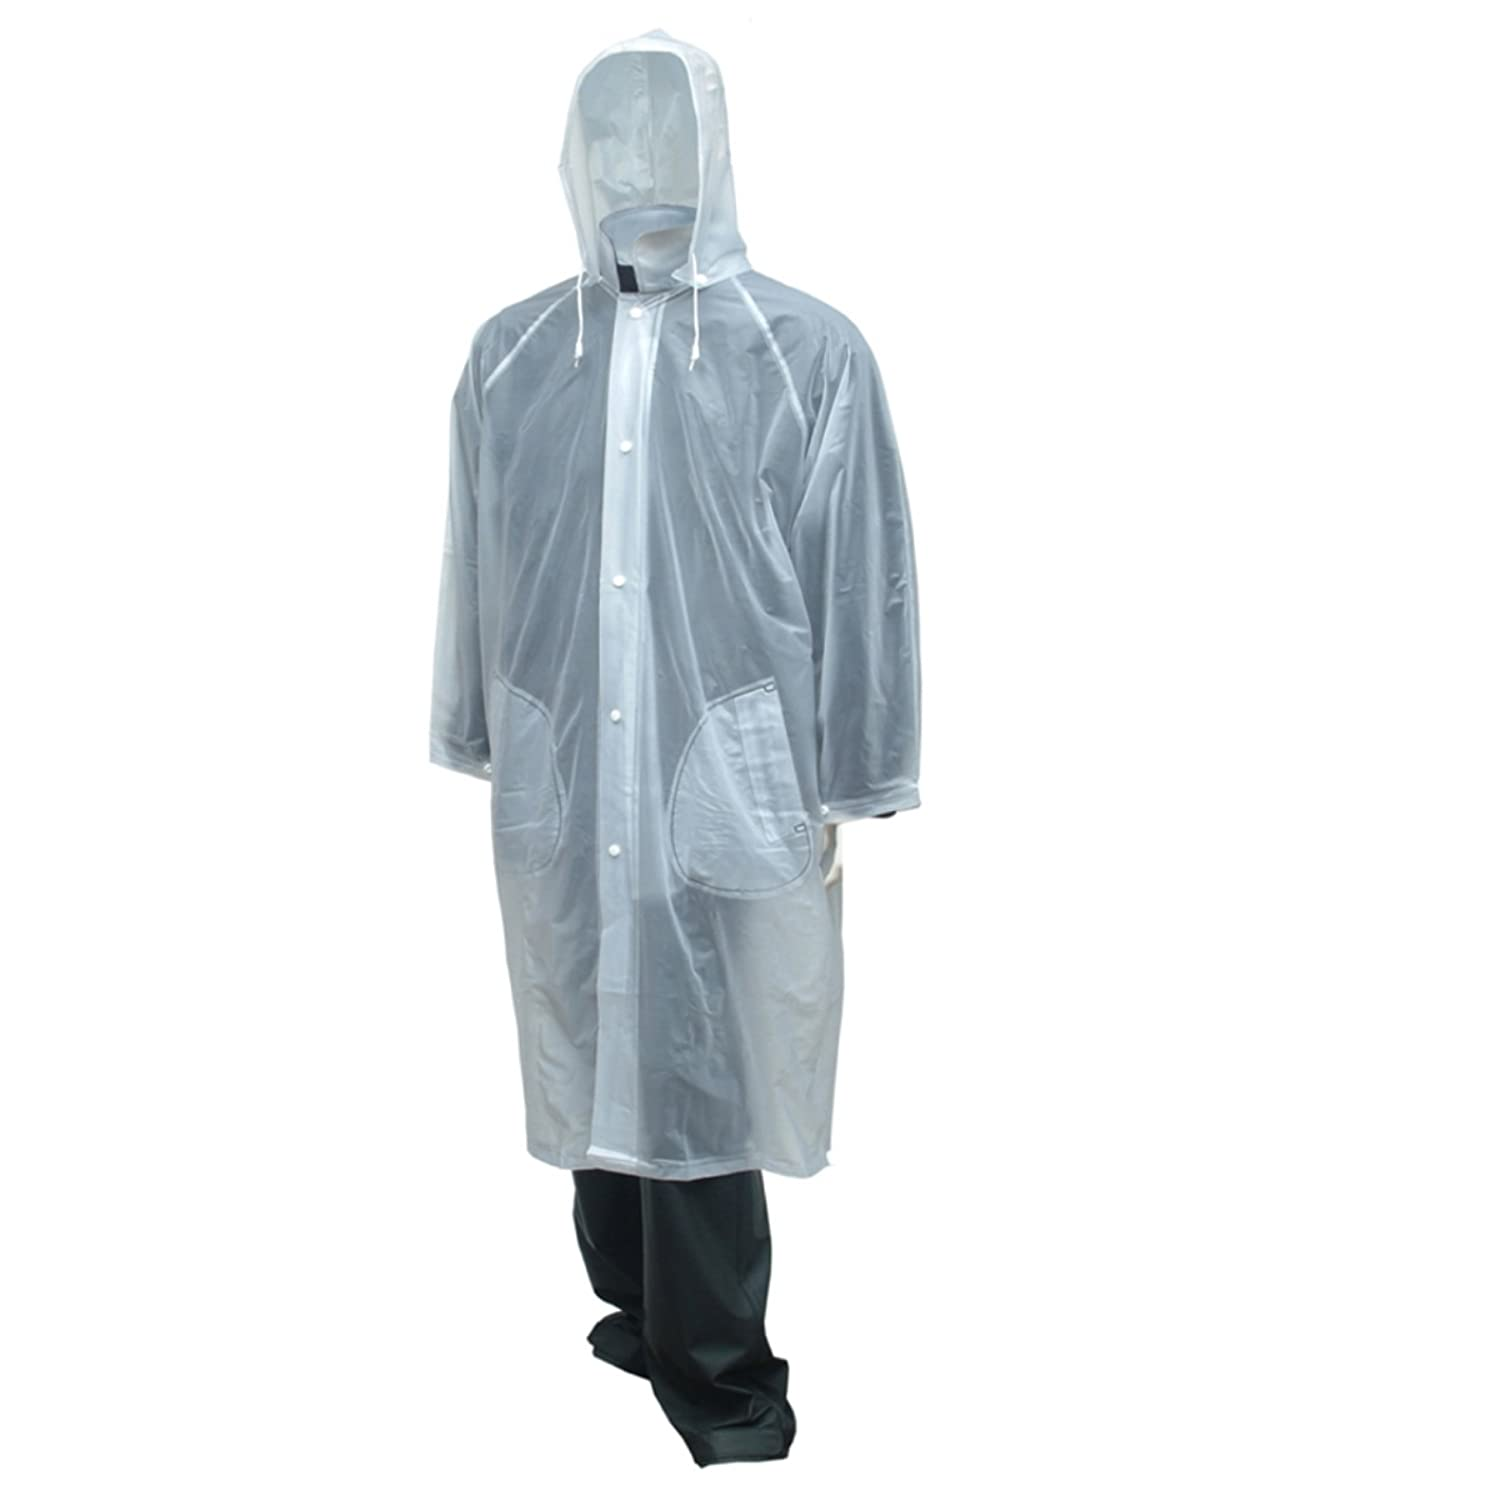 "Tuff-Enuff Clear 48"" Storm Fly Front Coat with Detachable Hood or get a 3 Pc Jacket Storm Fly Front + Detachable Hood + Plain Front Overall - .20mm Single Layer Ply PVC – 8 Mill Thick 3X-Large HORIZON DISTRIBUTION C61210"